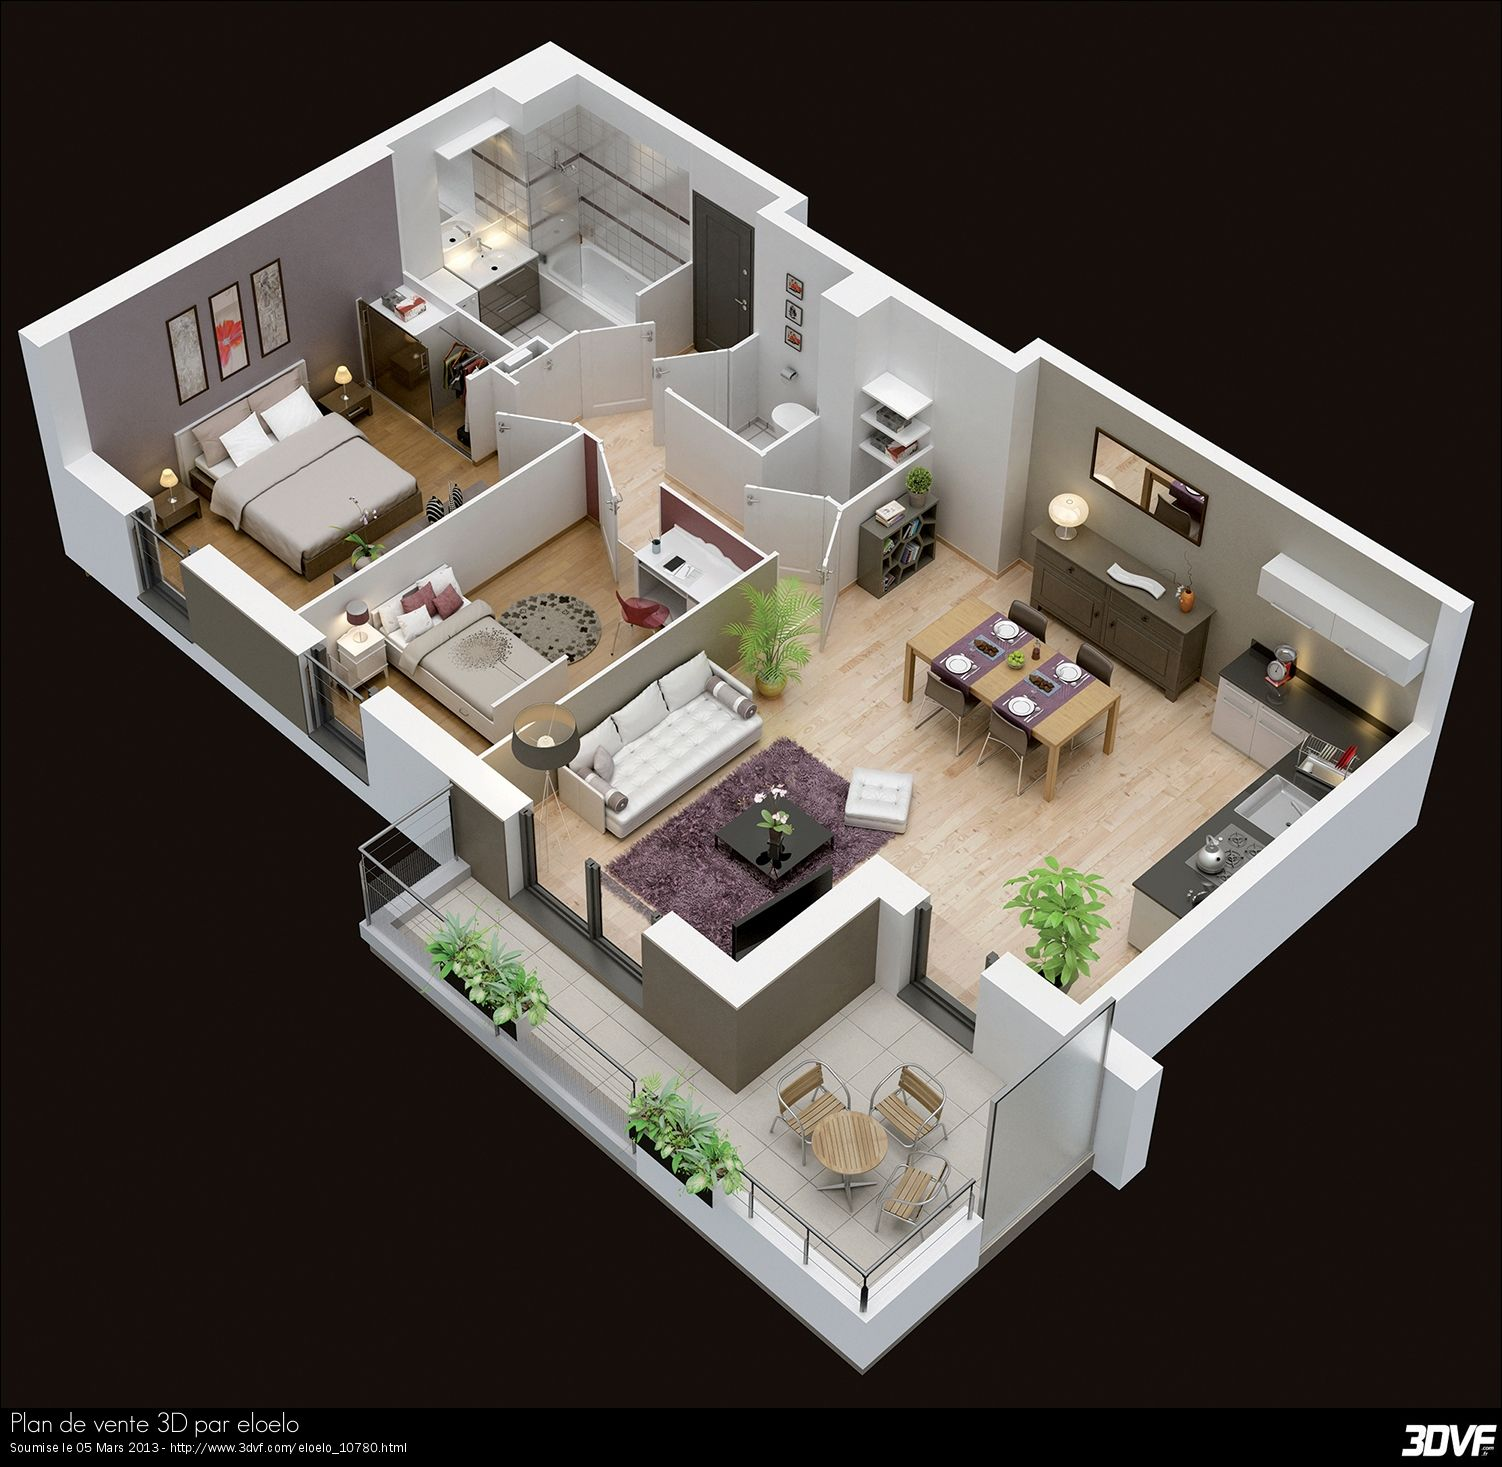 Plan maison moderne 3d 3d pinterest plan maison for Maison moderne plan 3d